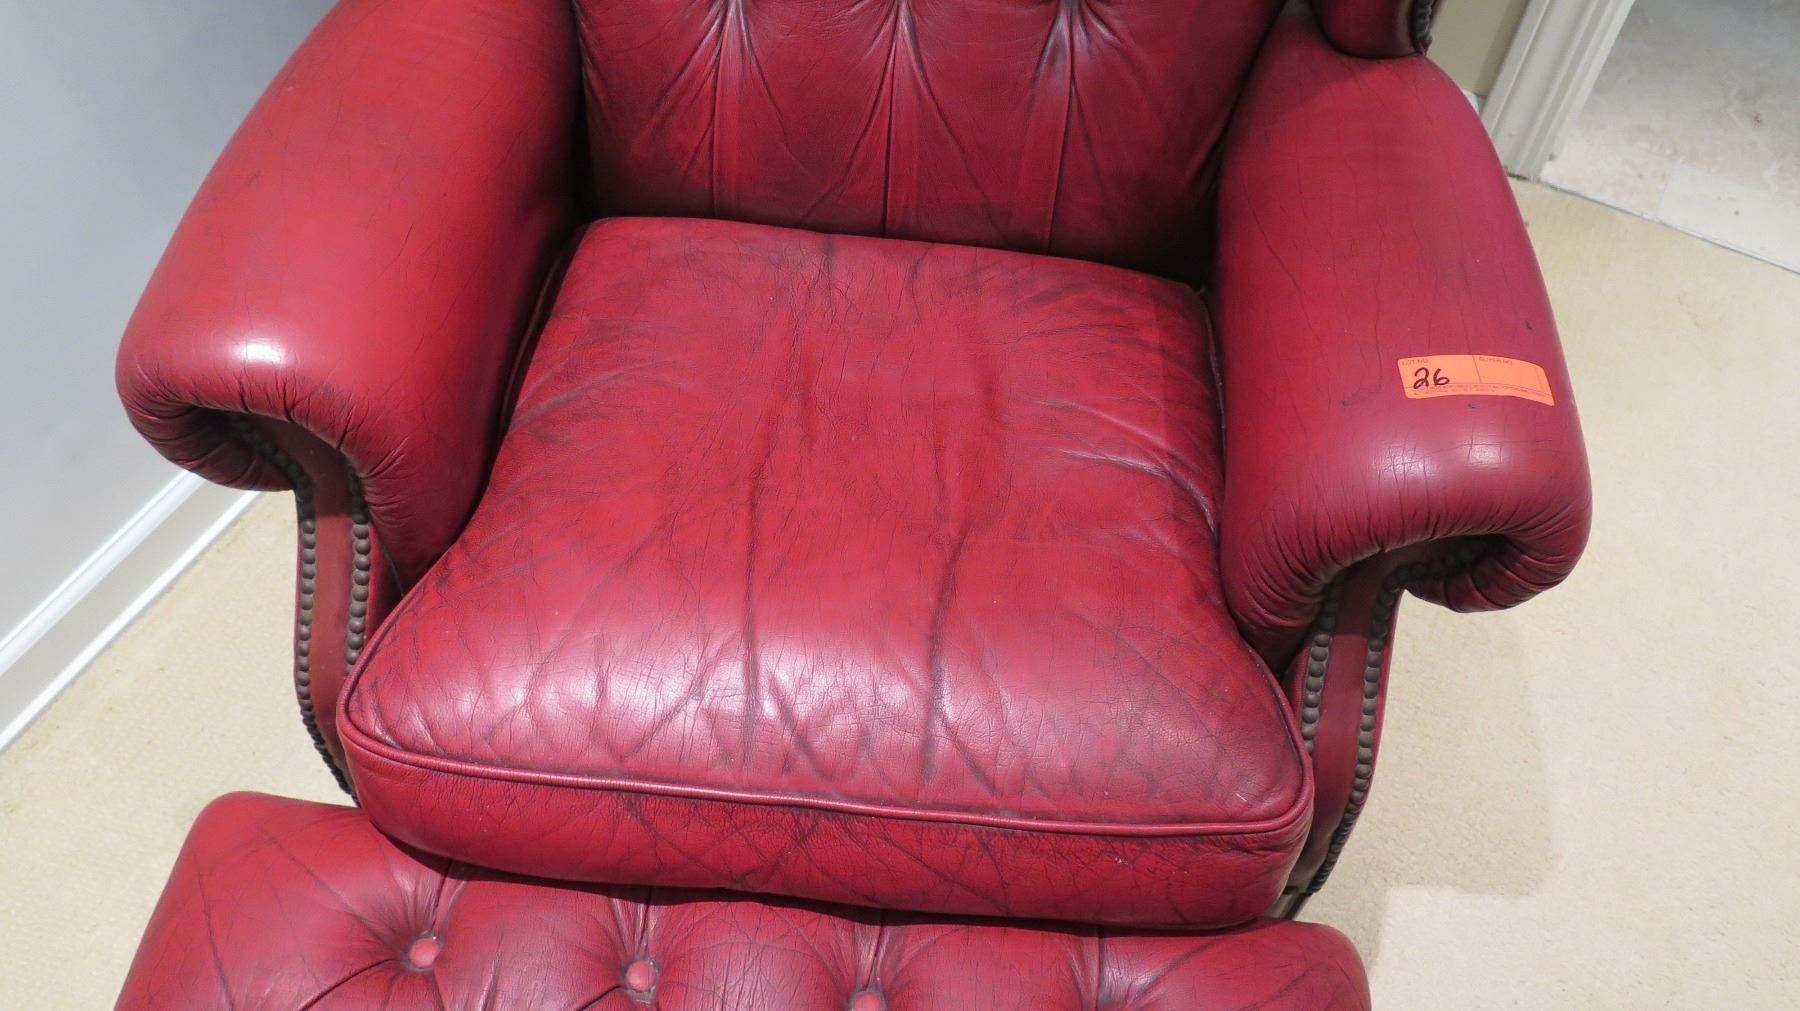 Tufted Red Leather Armchair & Ottoman - Oahu Auctions